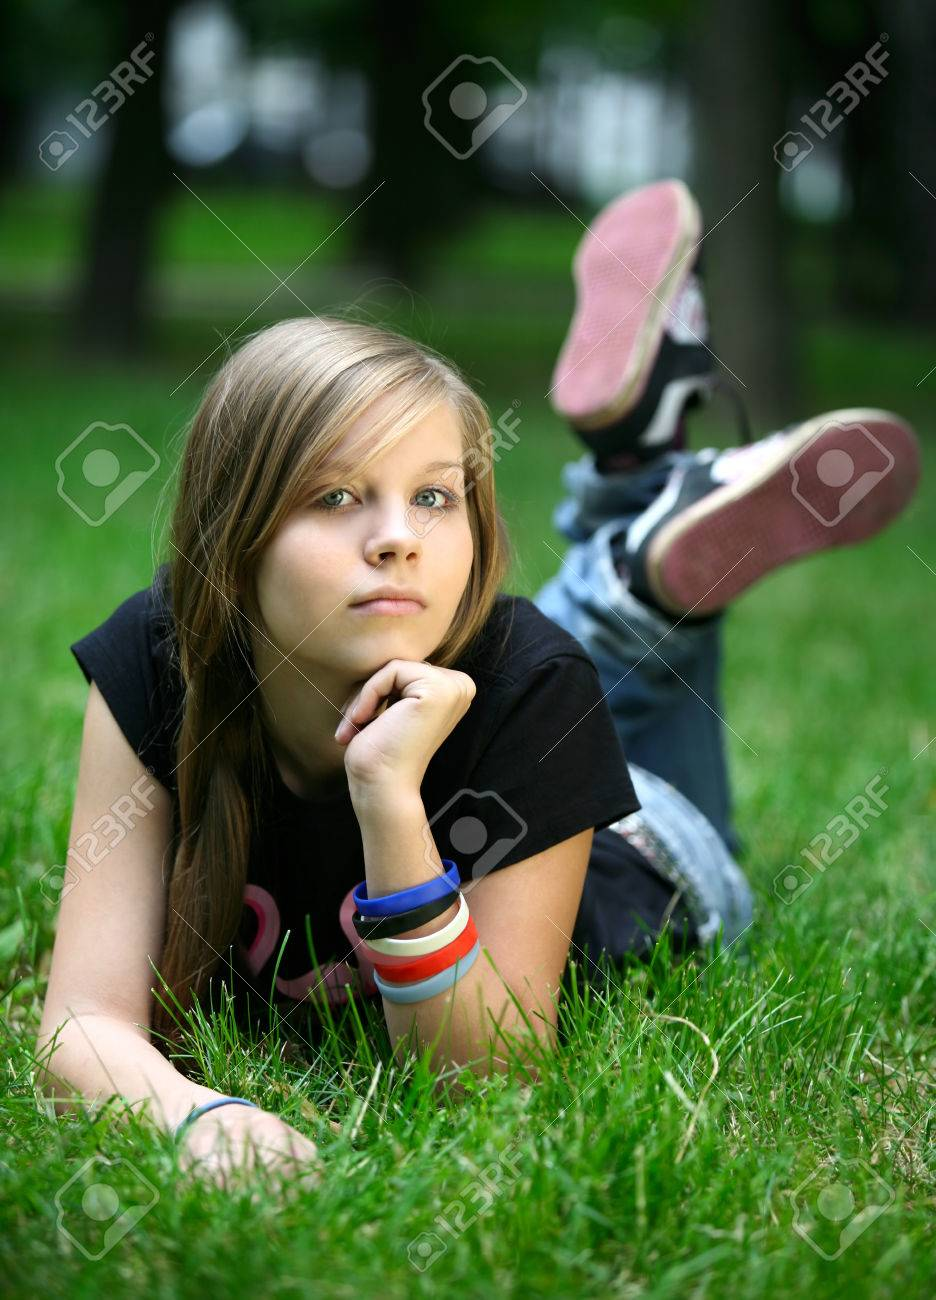 The girl - teenager lays in a grass. Stock Photo - 1590787